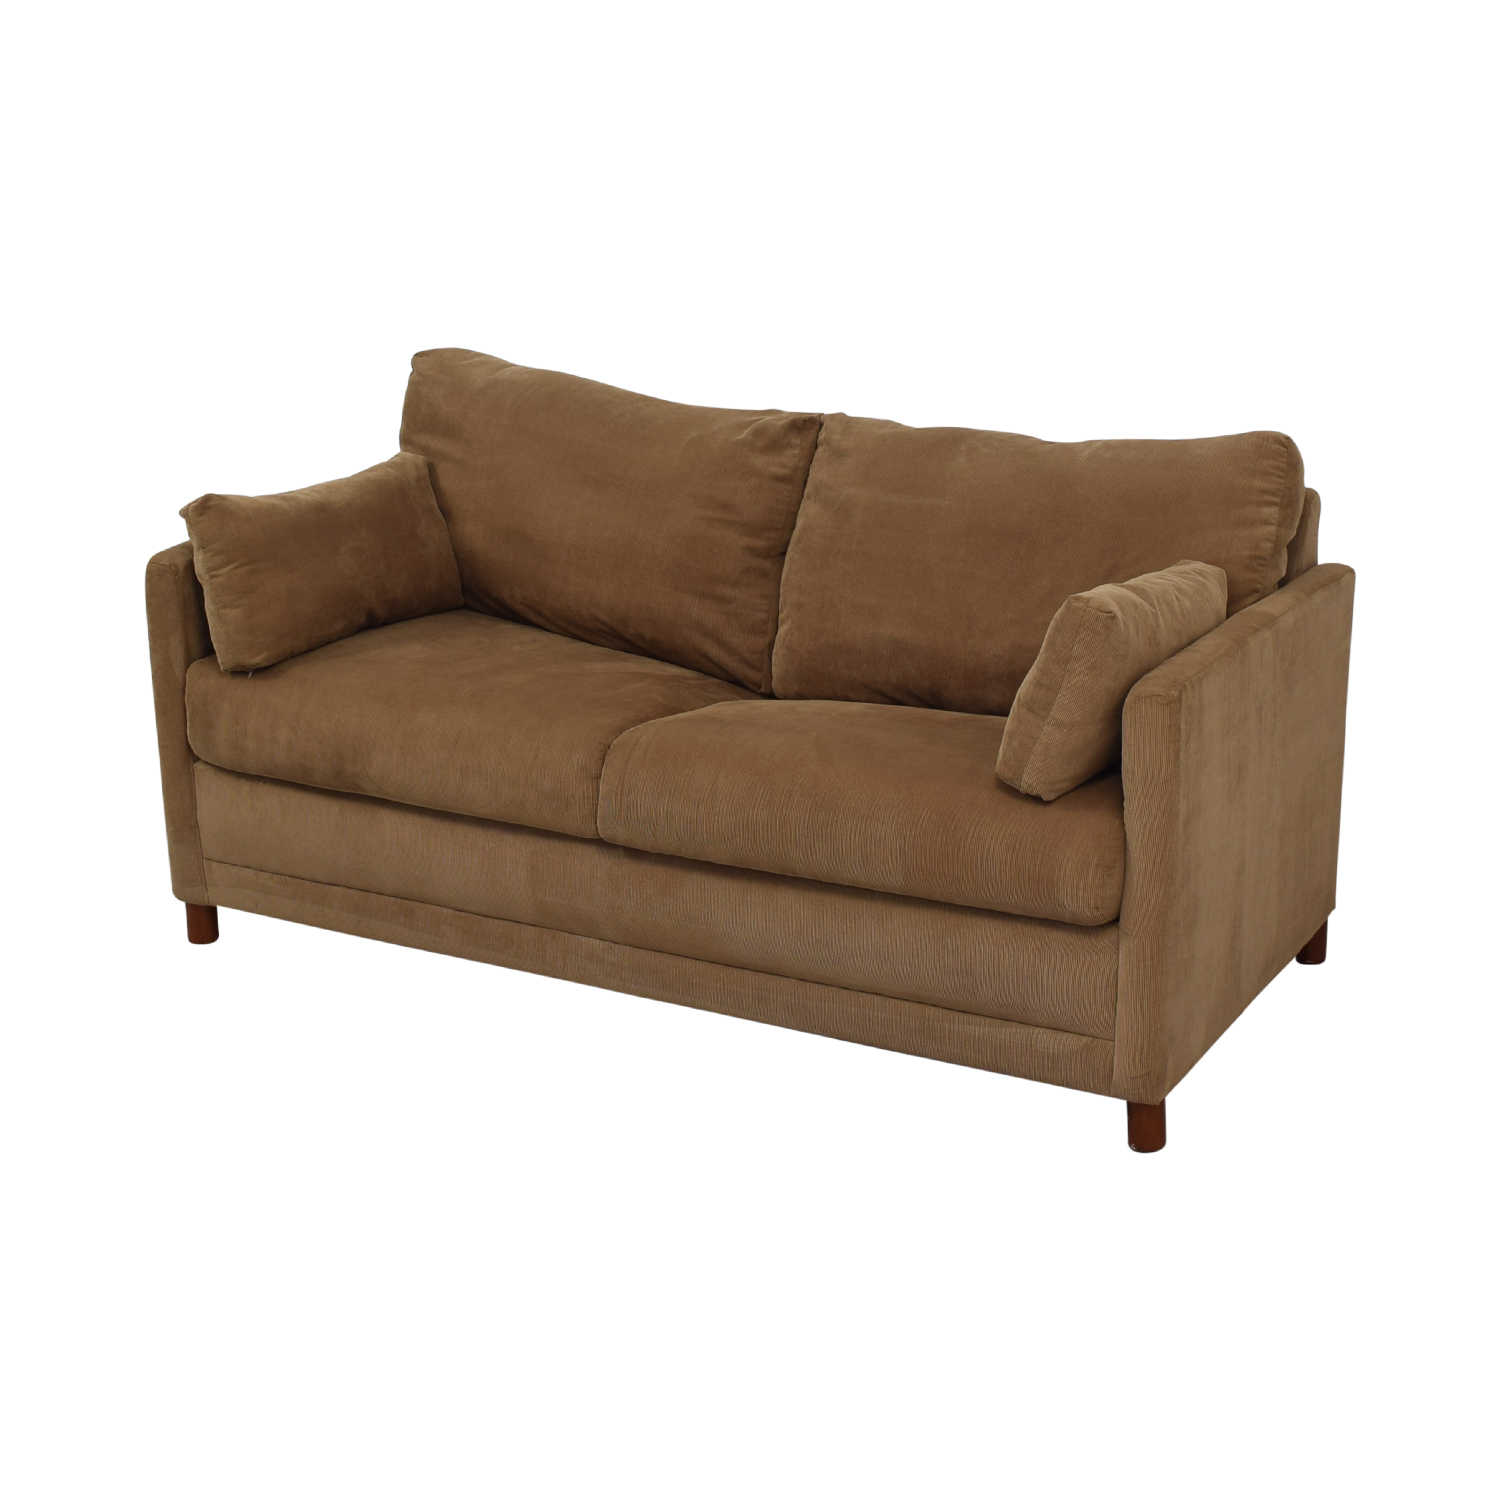 Jennifer Furniture Corduroy Loveset